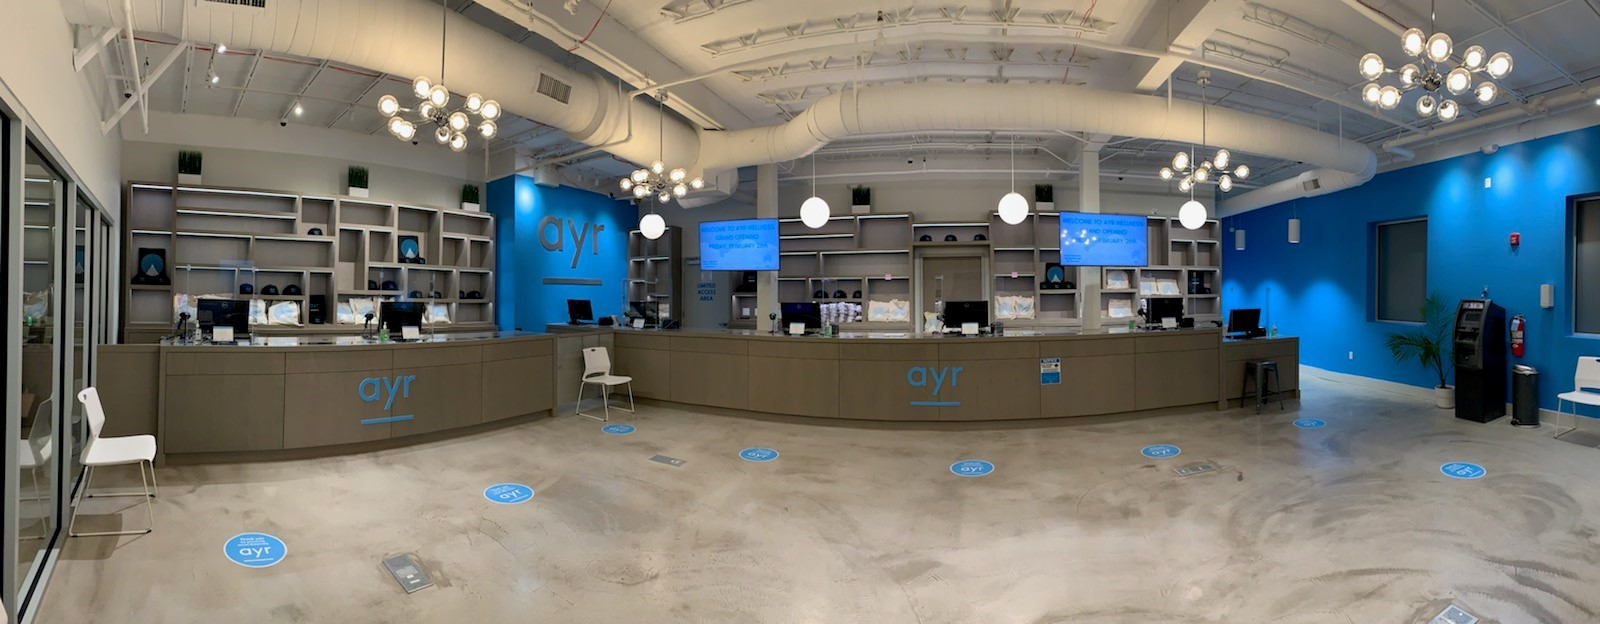 Ayr Wellness Announces Opening of Second Dispensary in Pennsylvania